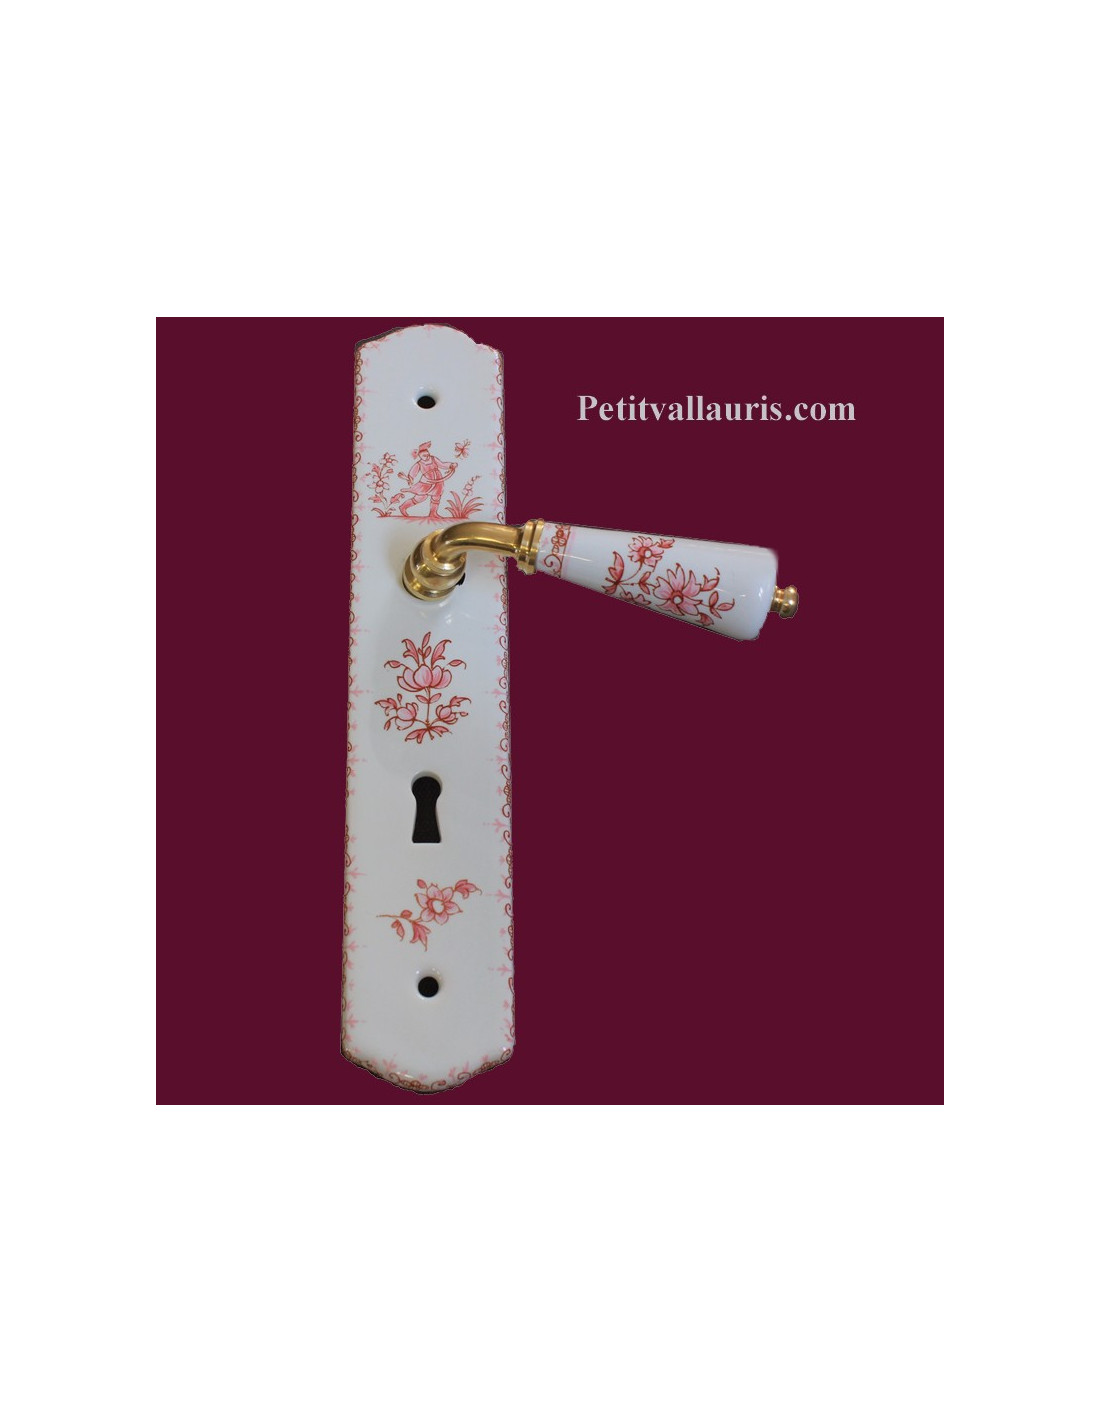 Plaque de propret d cor tradition vieux moustiers rose for Plaque de proprete porte